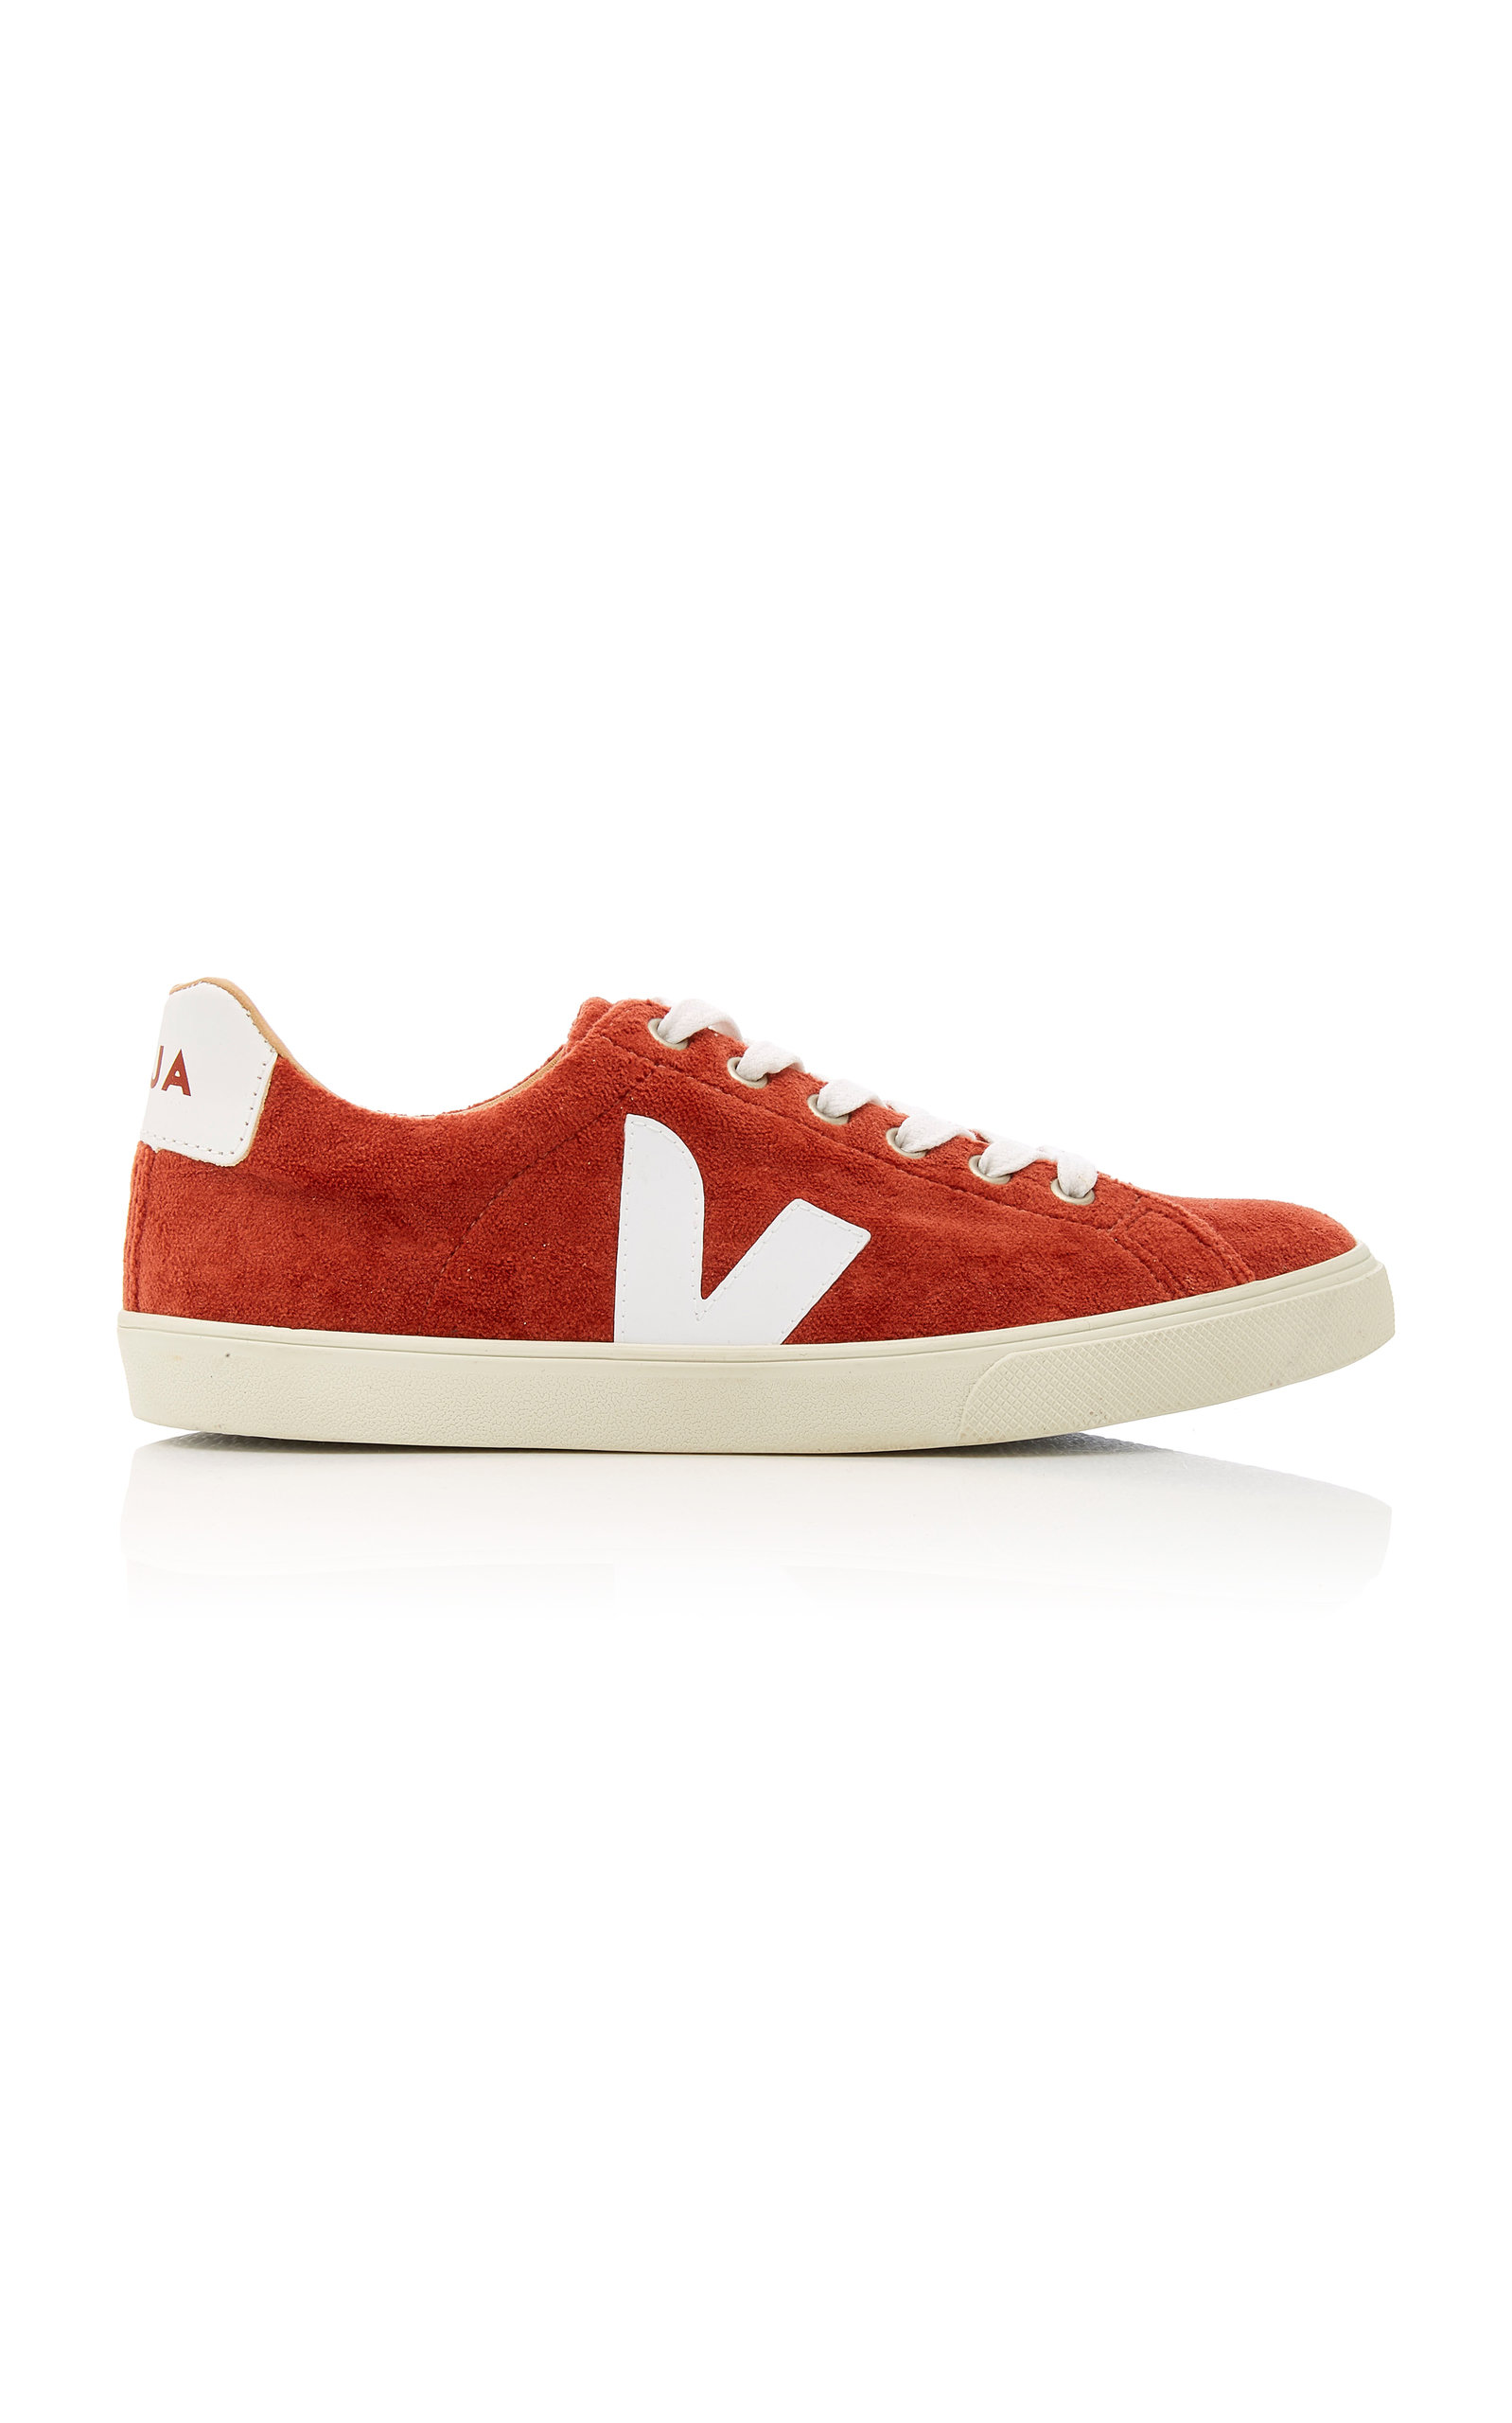 Veja | VEJA Esplar Leather-Trimmed Suede Sneakers | Clouty